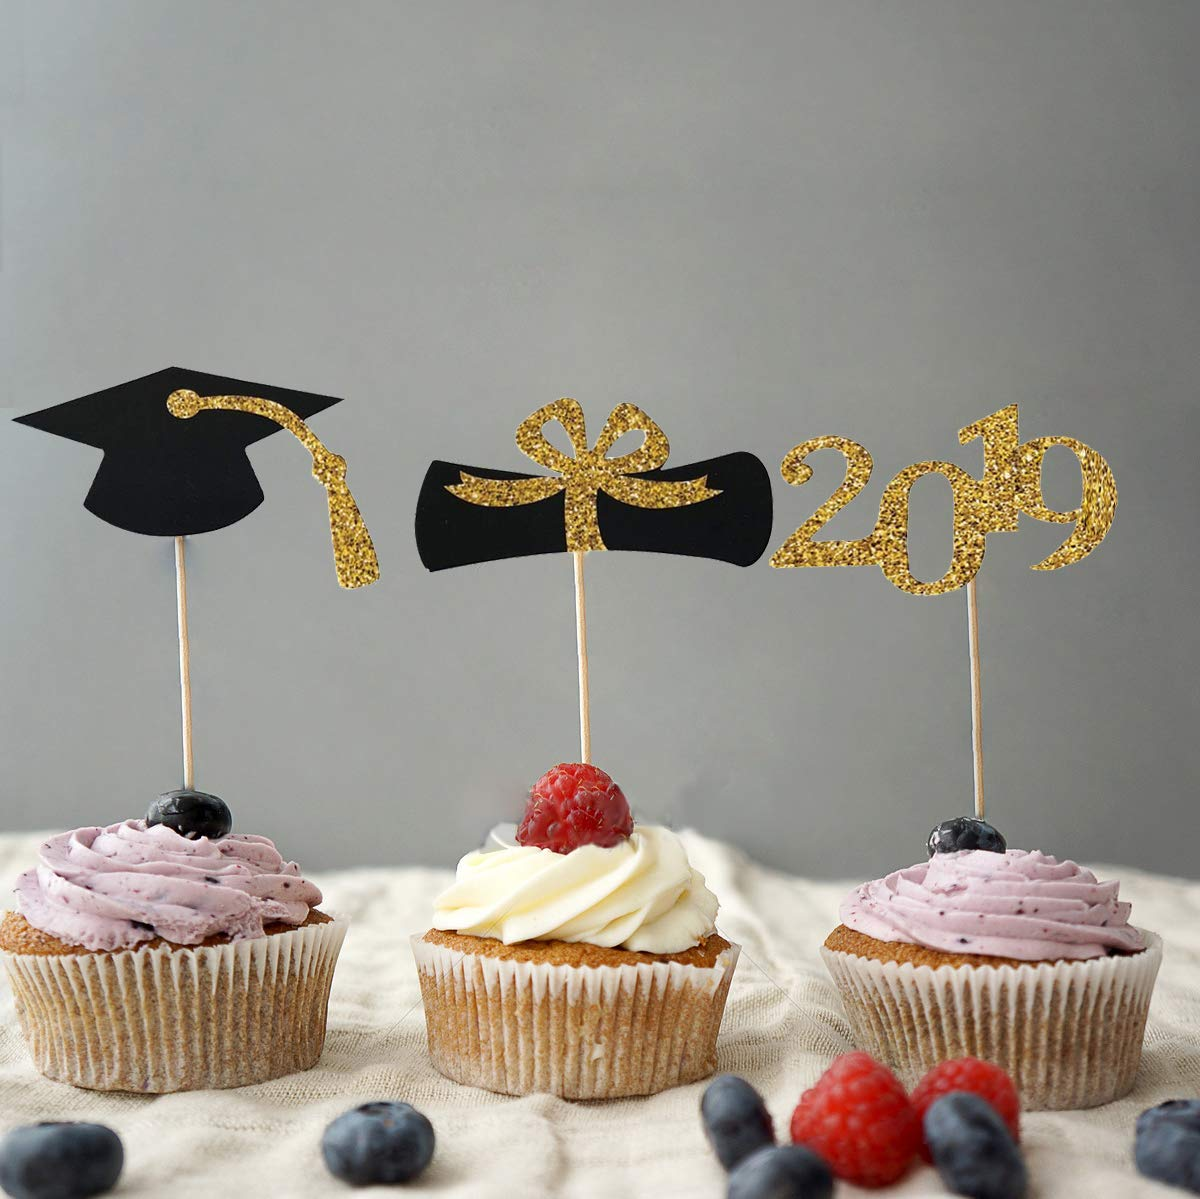 Black and Gold Cupcake Decorations 48pcs Graduation Cupcake Toppers 2019 Graduation Party Decorations